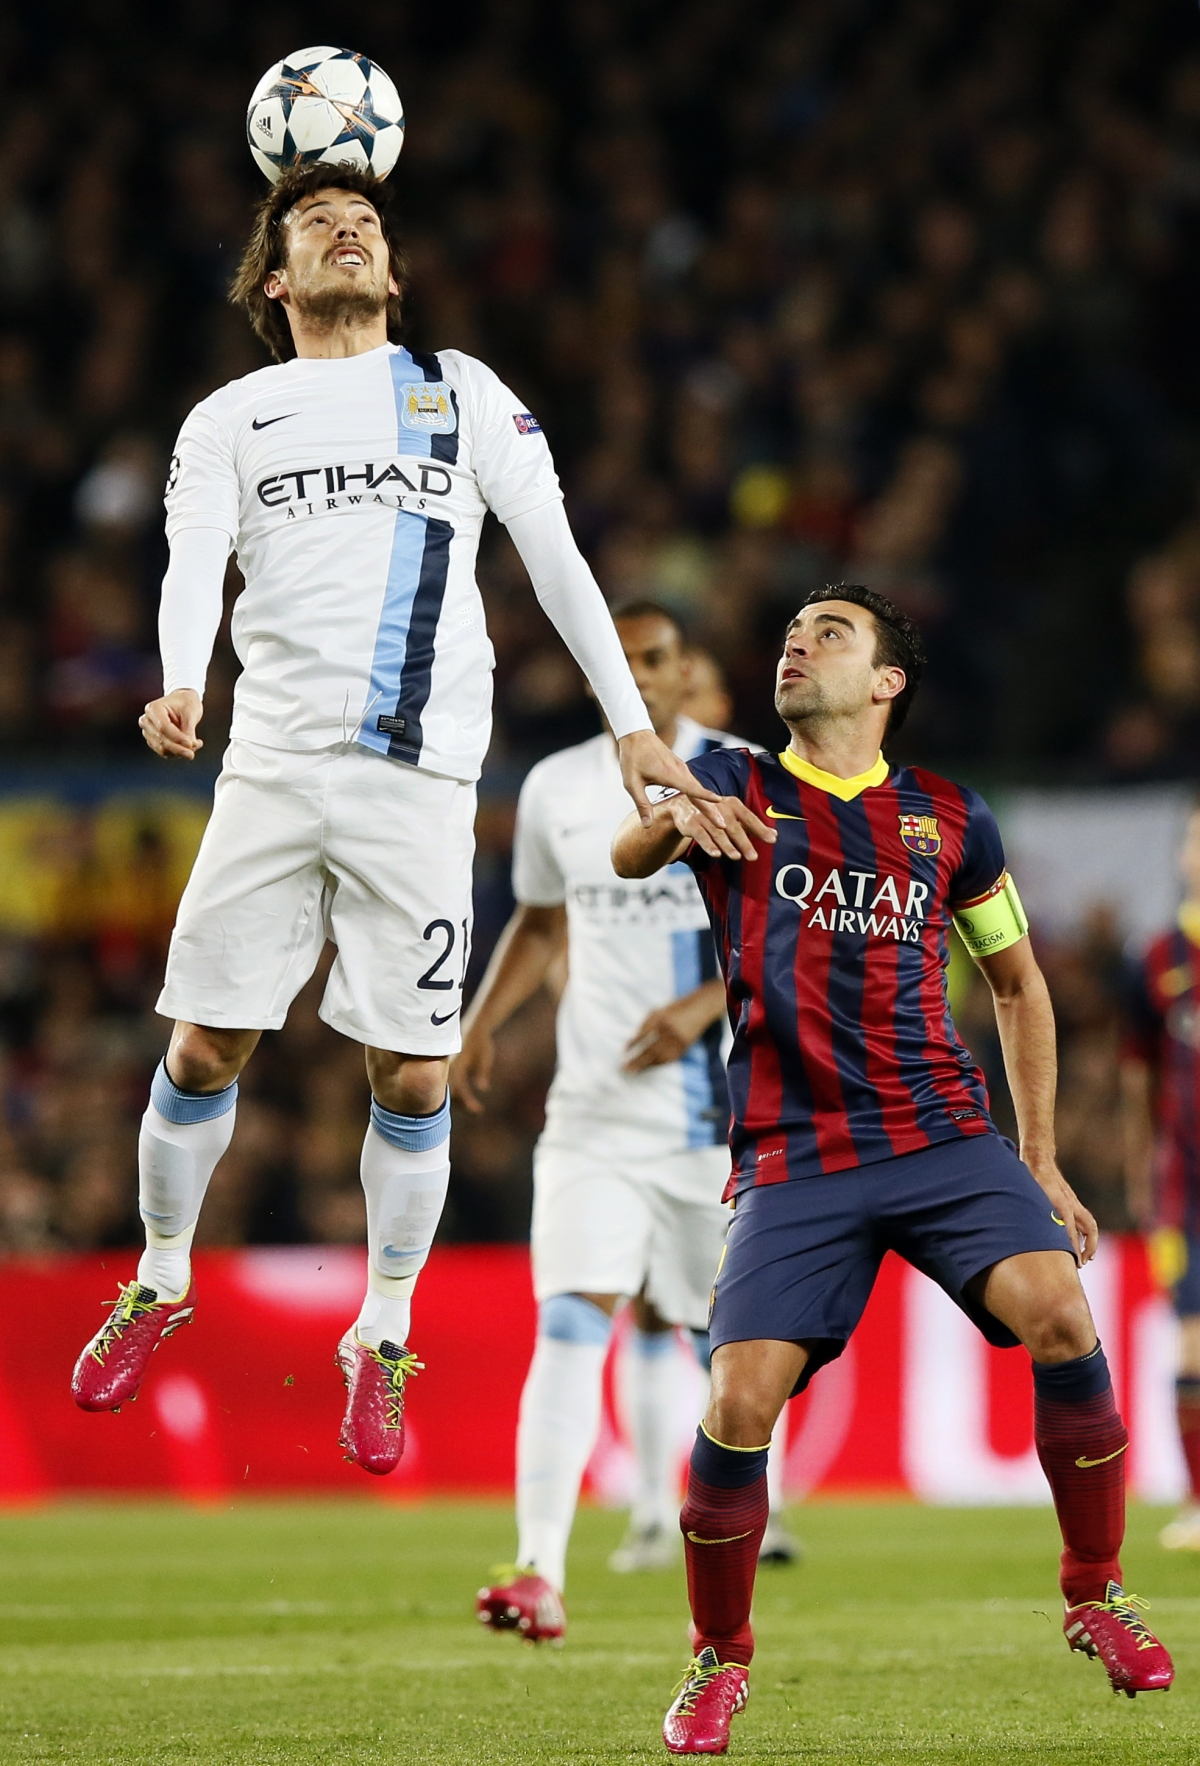 Manchester City's David Silva (L) heads the ball next to Barcelona's Xavi during their Champions League last 16 second leg soccer match at Camp Nou stadium in Barcelona March 12, 2014.